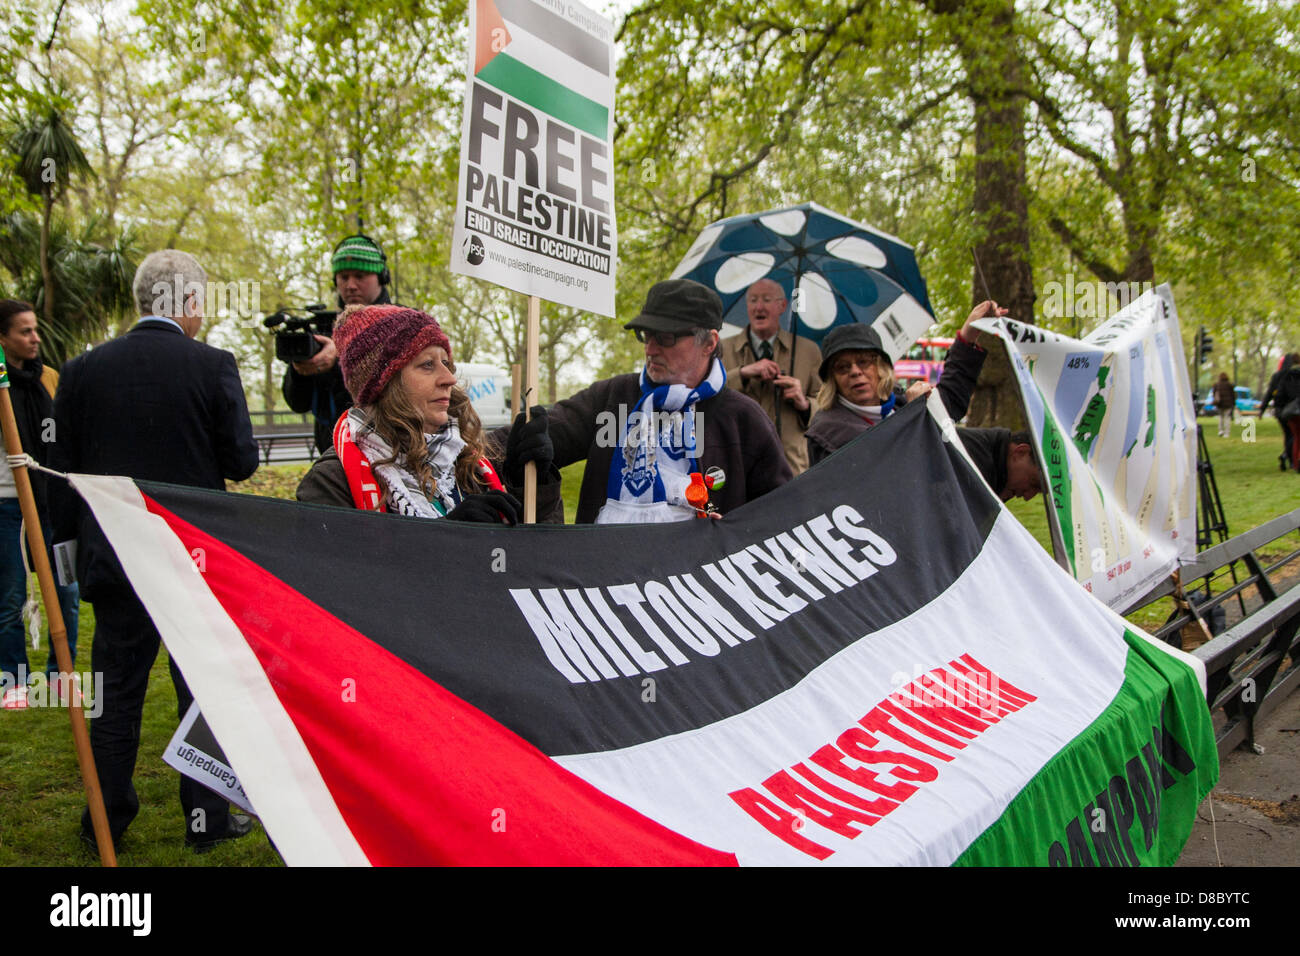 London, UK. 25th May 2013. Pro-Palestinian protesters demand that Israel is barred from hosting the Under 21s European - Stock Image